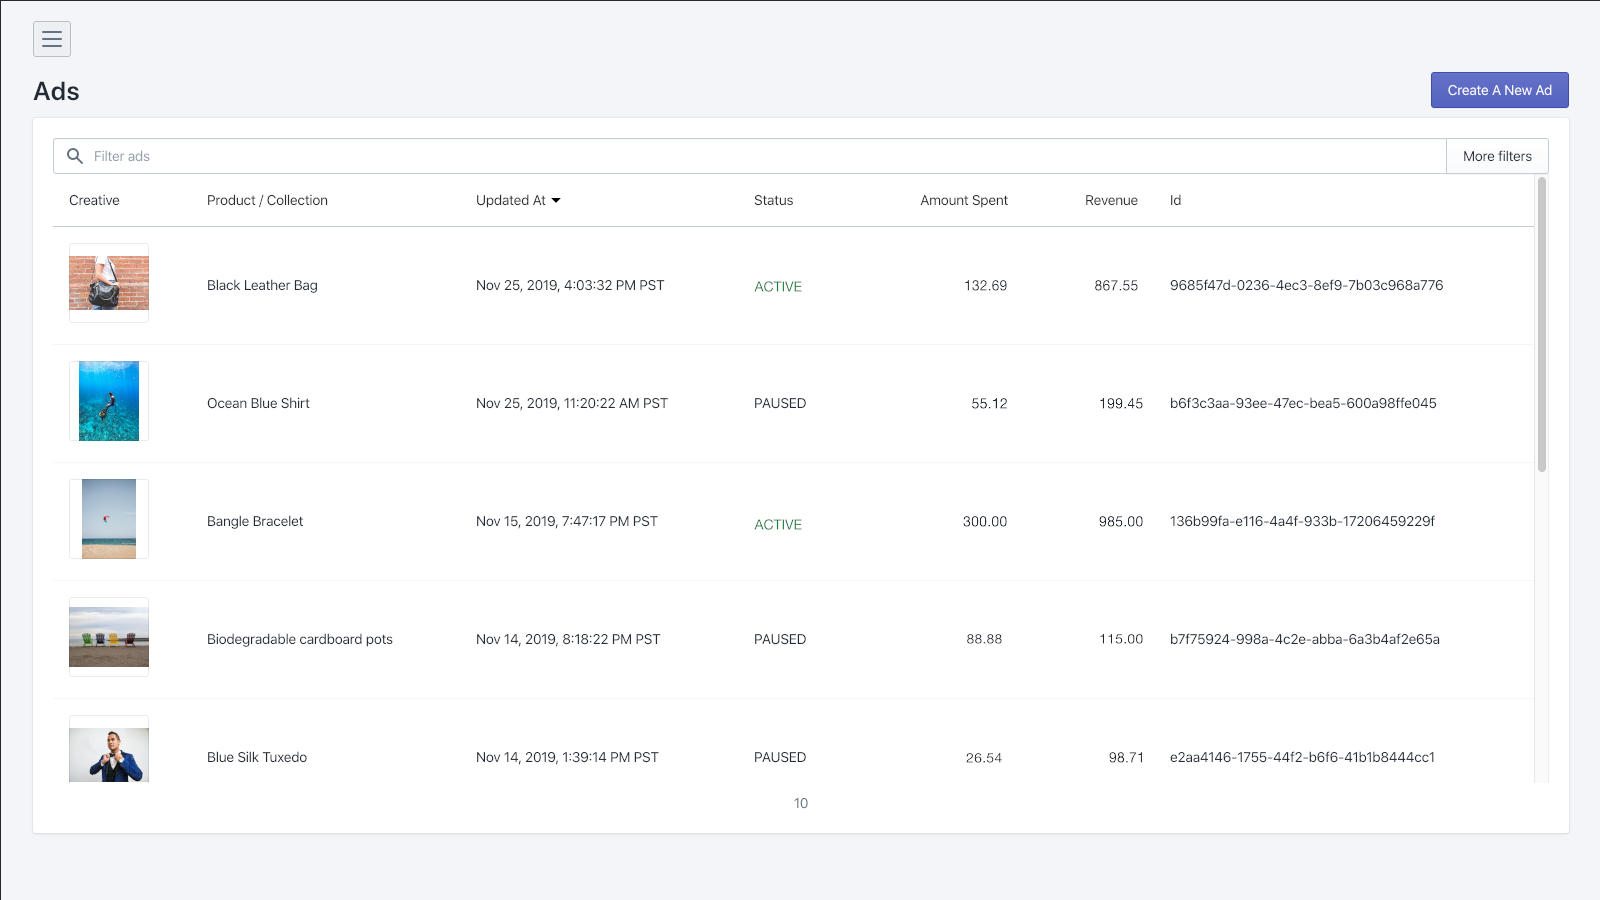 Manage and track the ROI of your ads